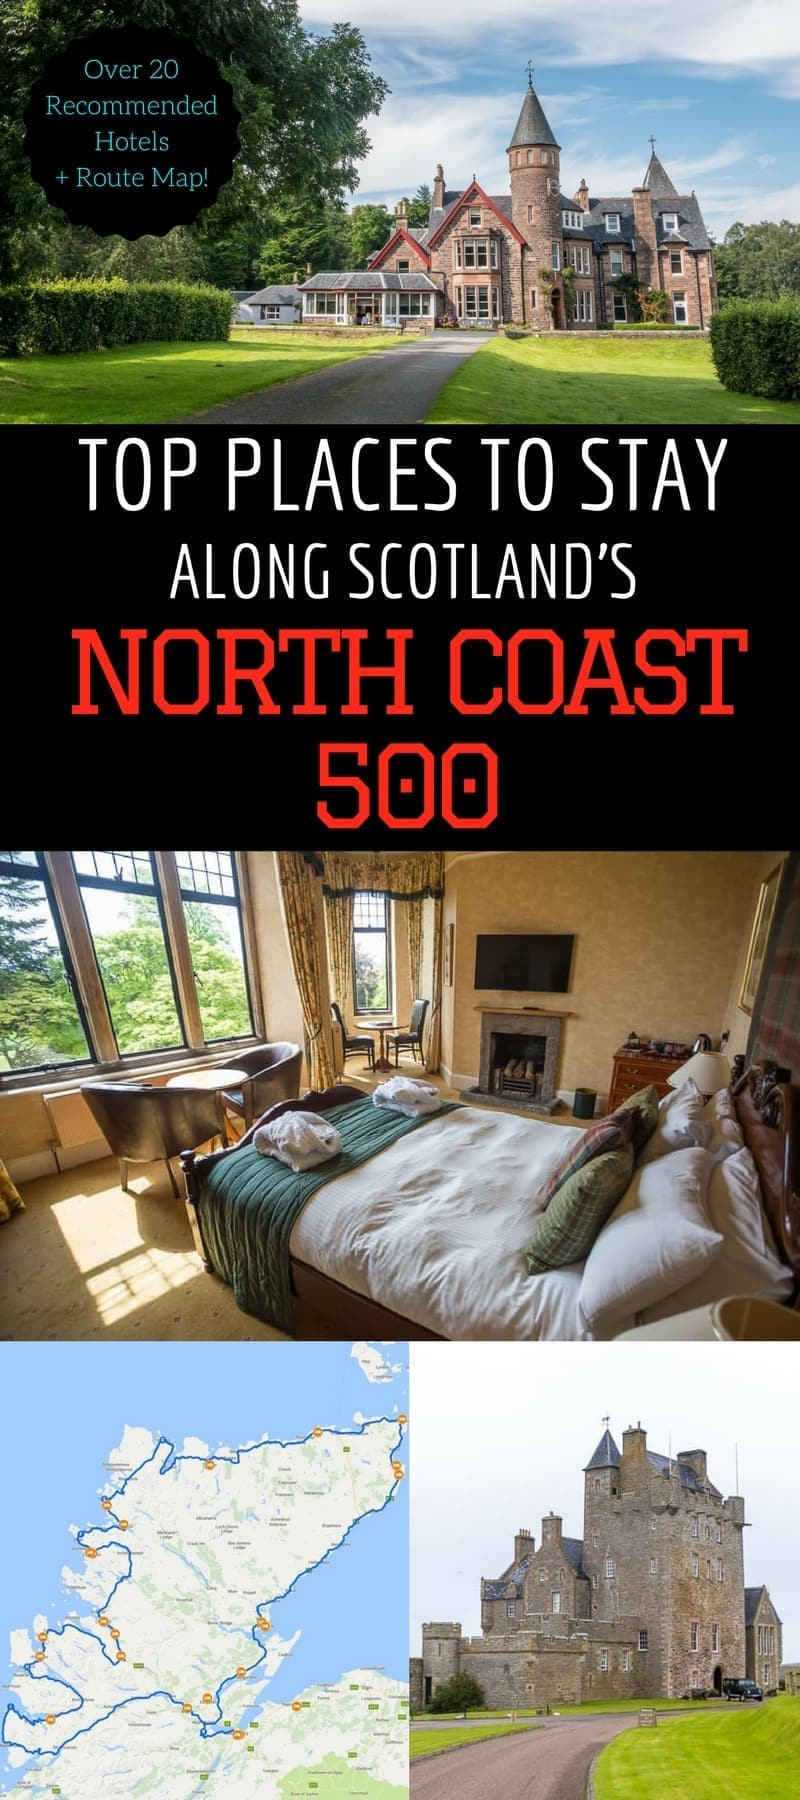 A guide to the best North Coast 500 hotels in Scotland. Accommodation options range from luxury castles to cozy B&B's to seaside cottages. This article will help you figure out where to stay along the NC500 so you can make the most of your North Coast 500 road trip!